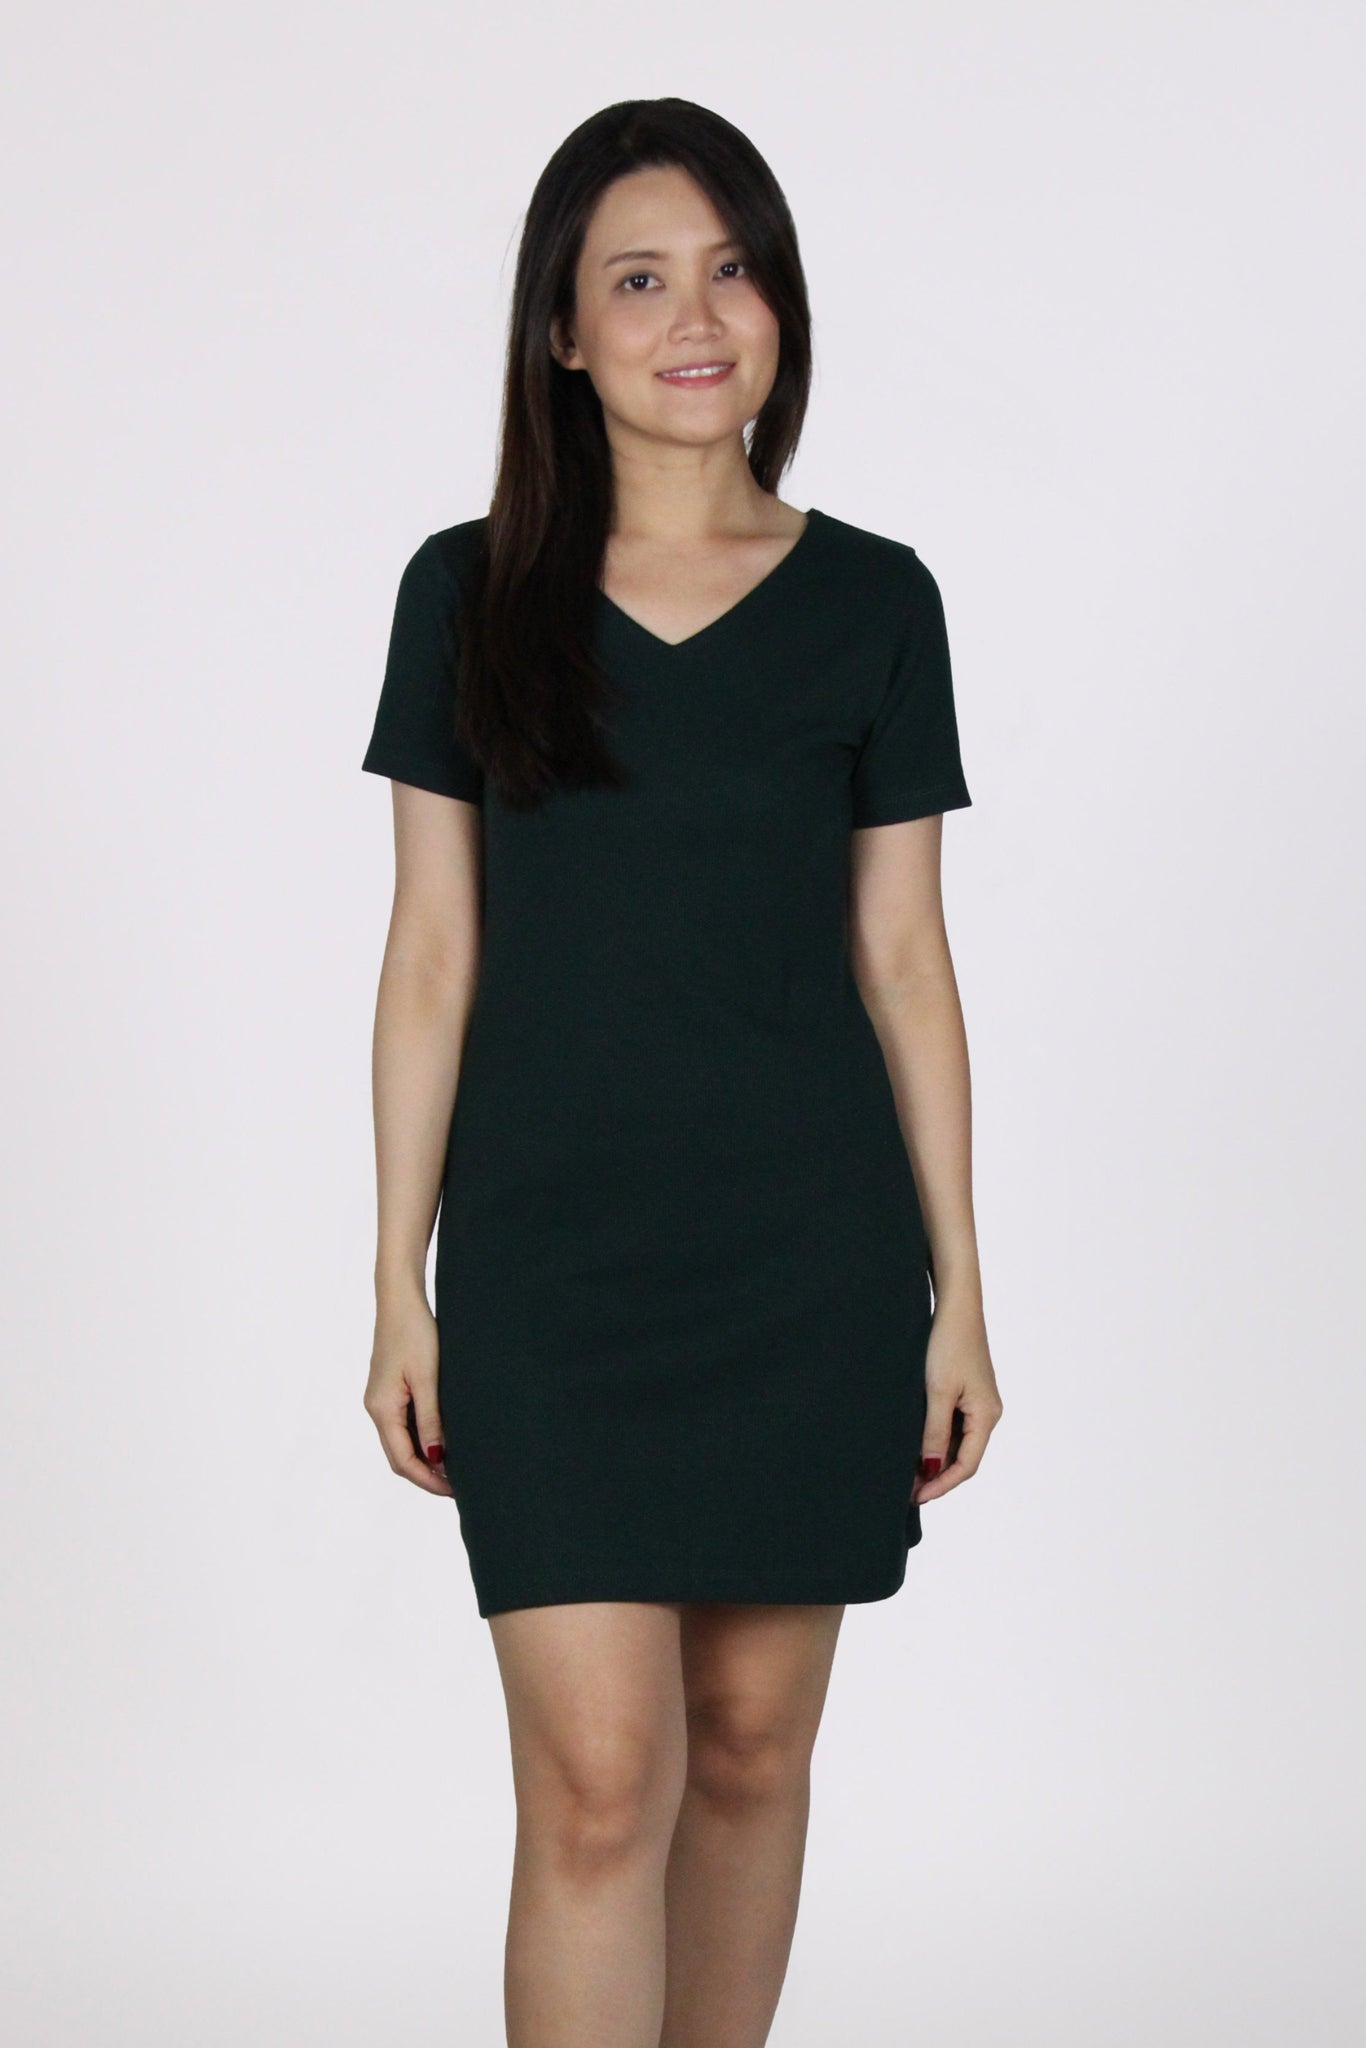 Basic Everyday Comfy V Neck Tee Dress in Dark Green